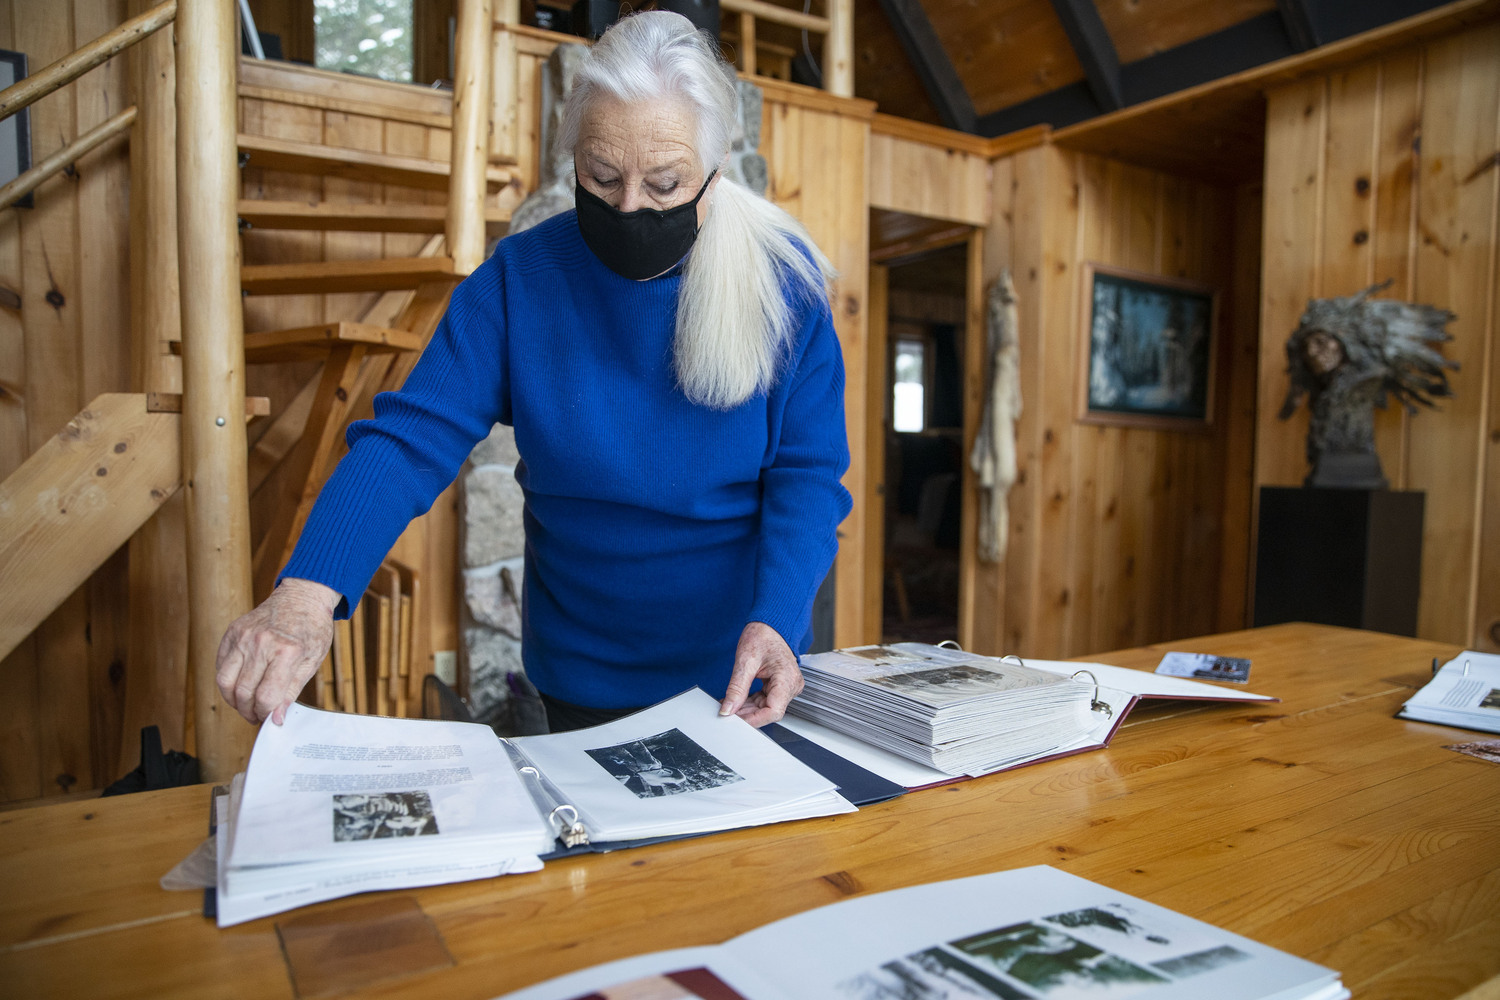 At her cabin, Leddy looked through photos books stuffed with images of their deep Gunflint Trail history.